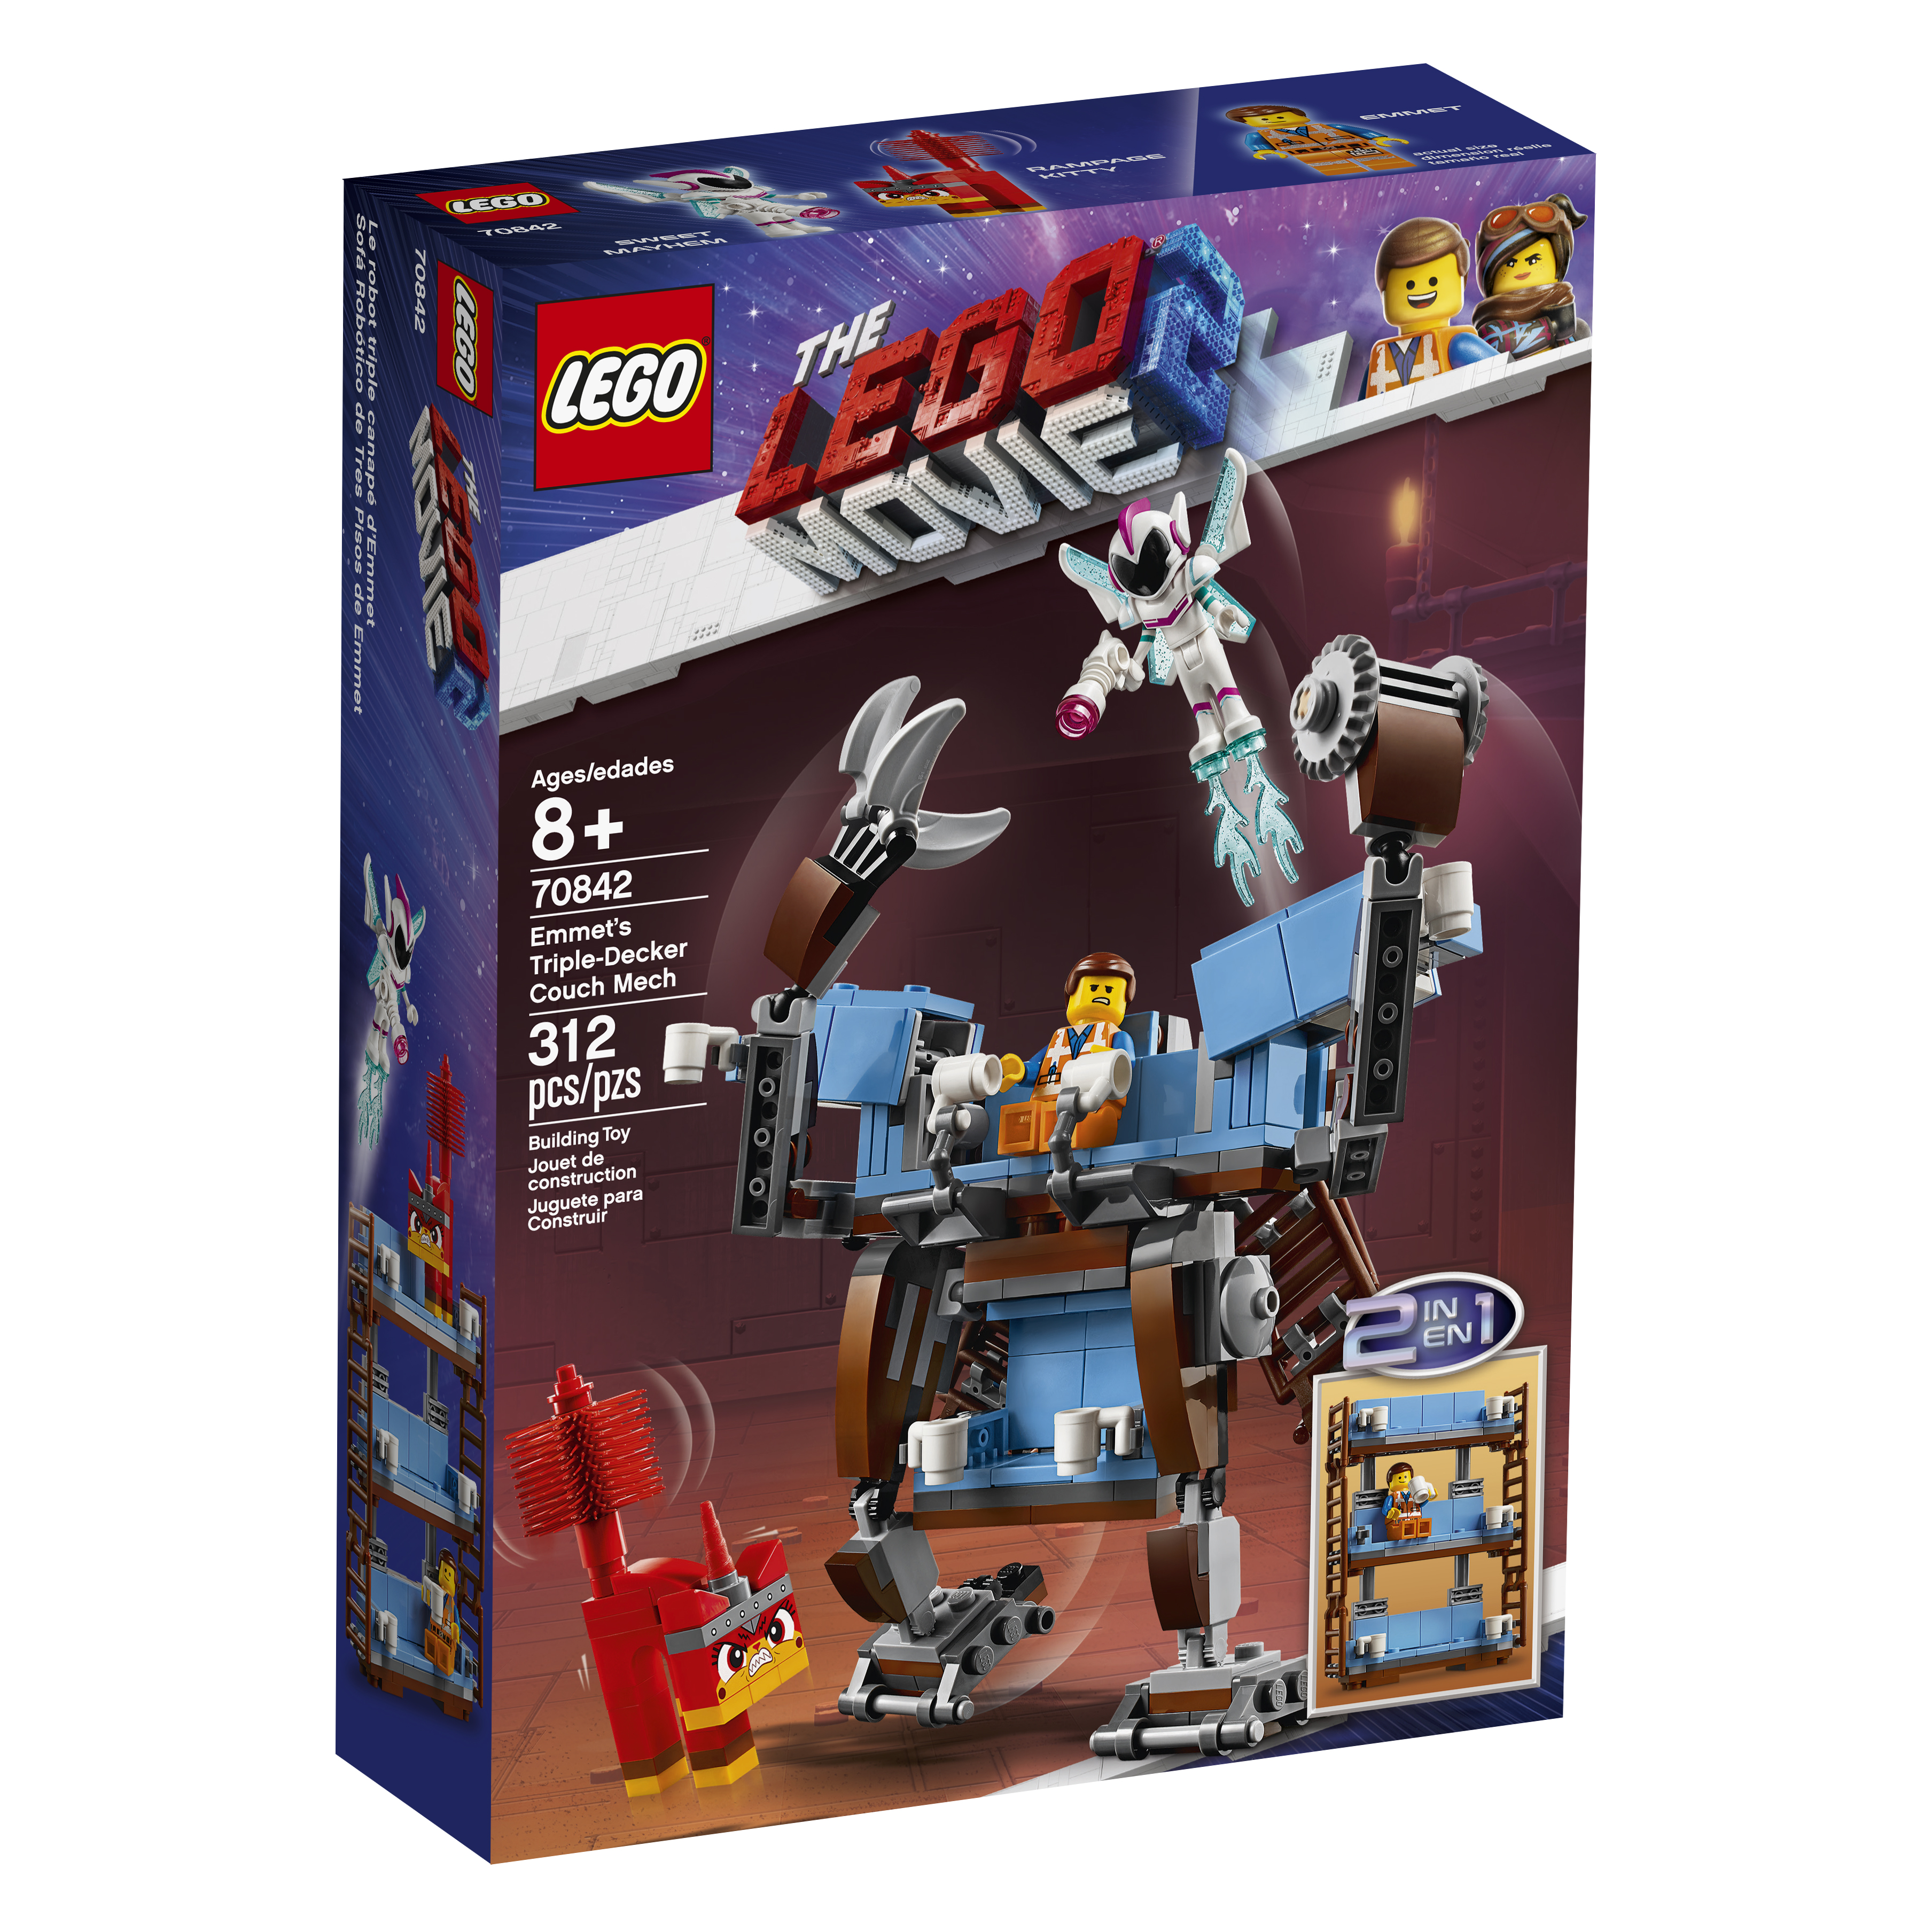 how to make a simple lego sofa contemporary round 70842 movie 2 emmet s triple decker couch mech box the published february 12 2019 at 3616 in three new